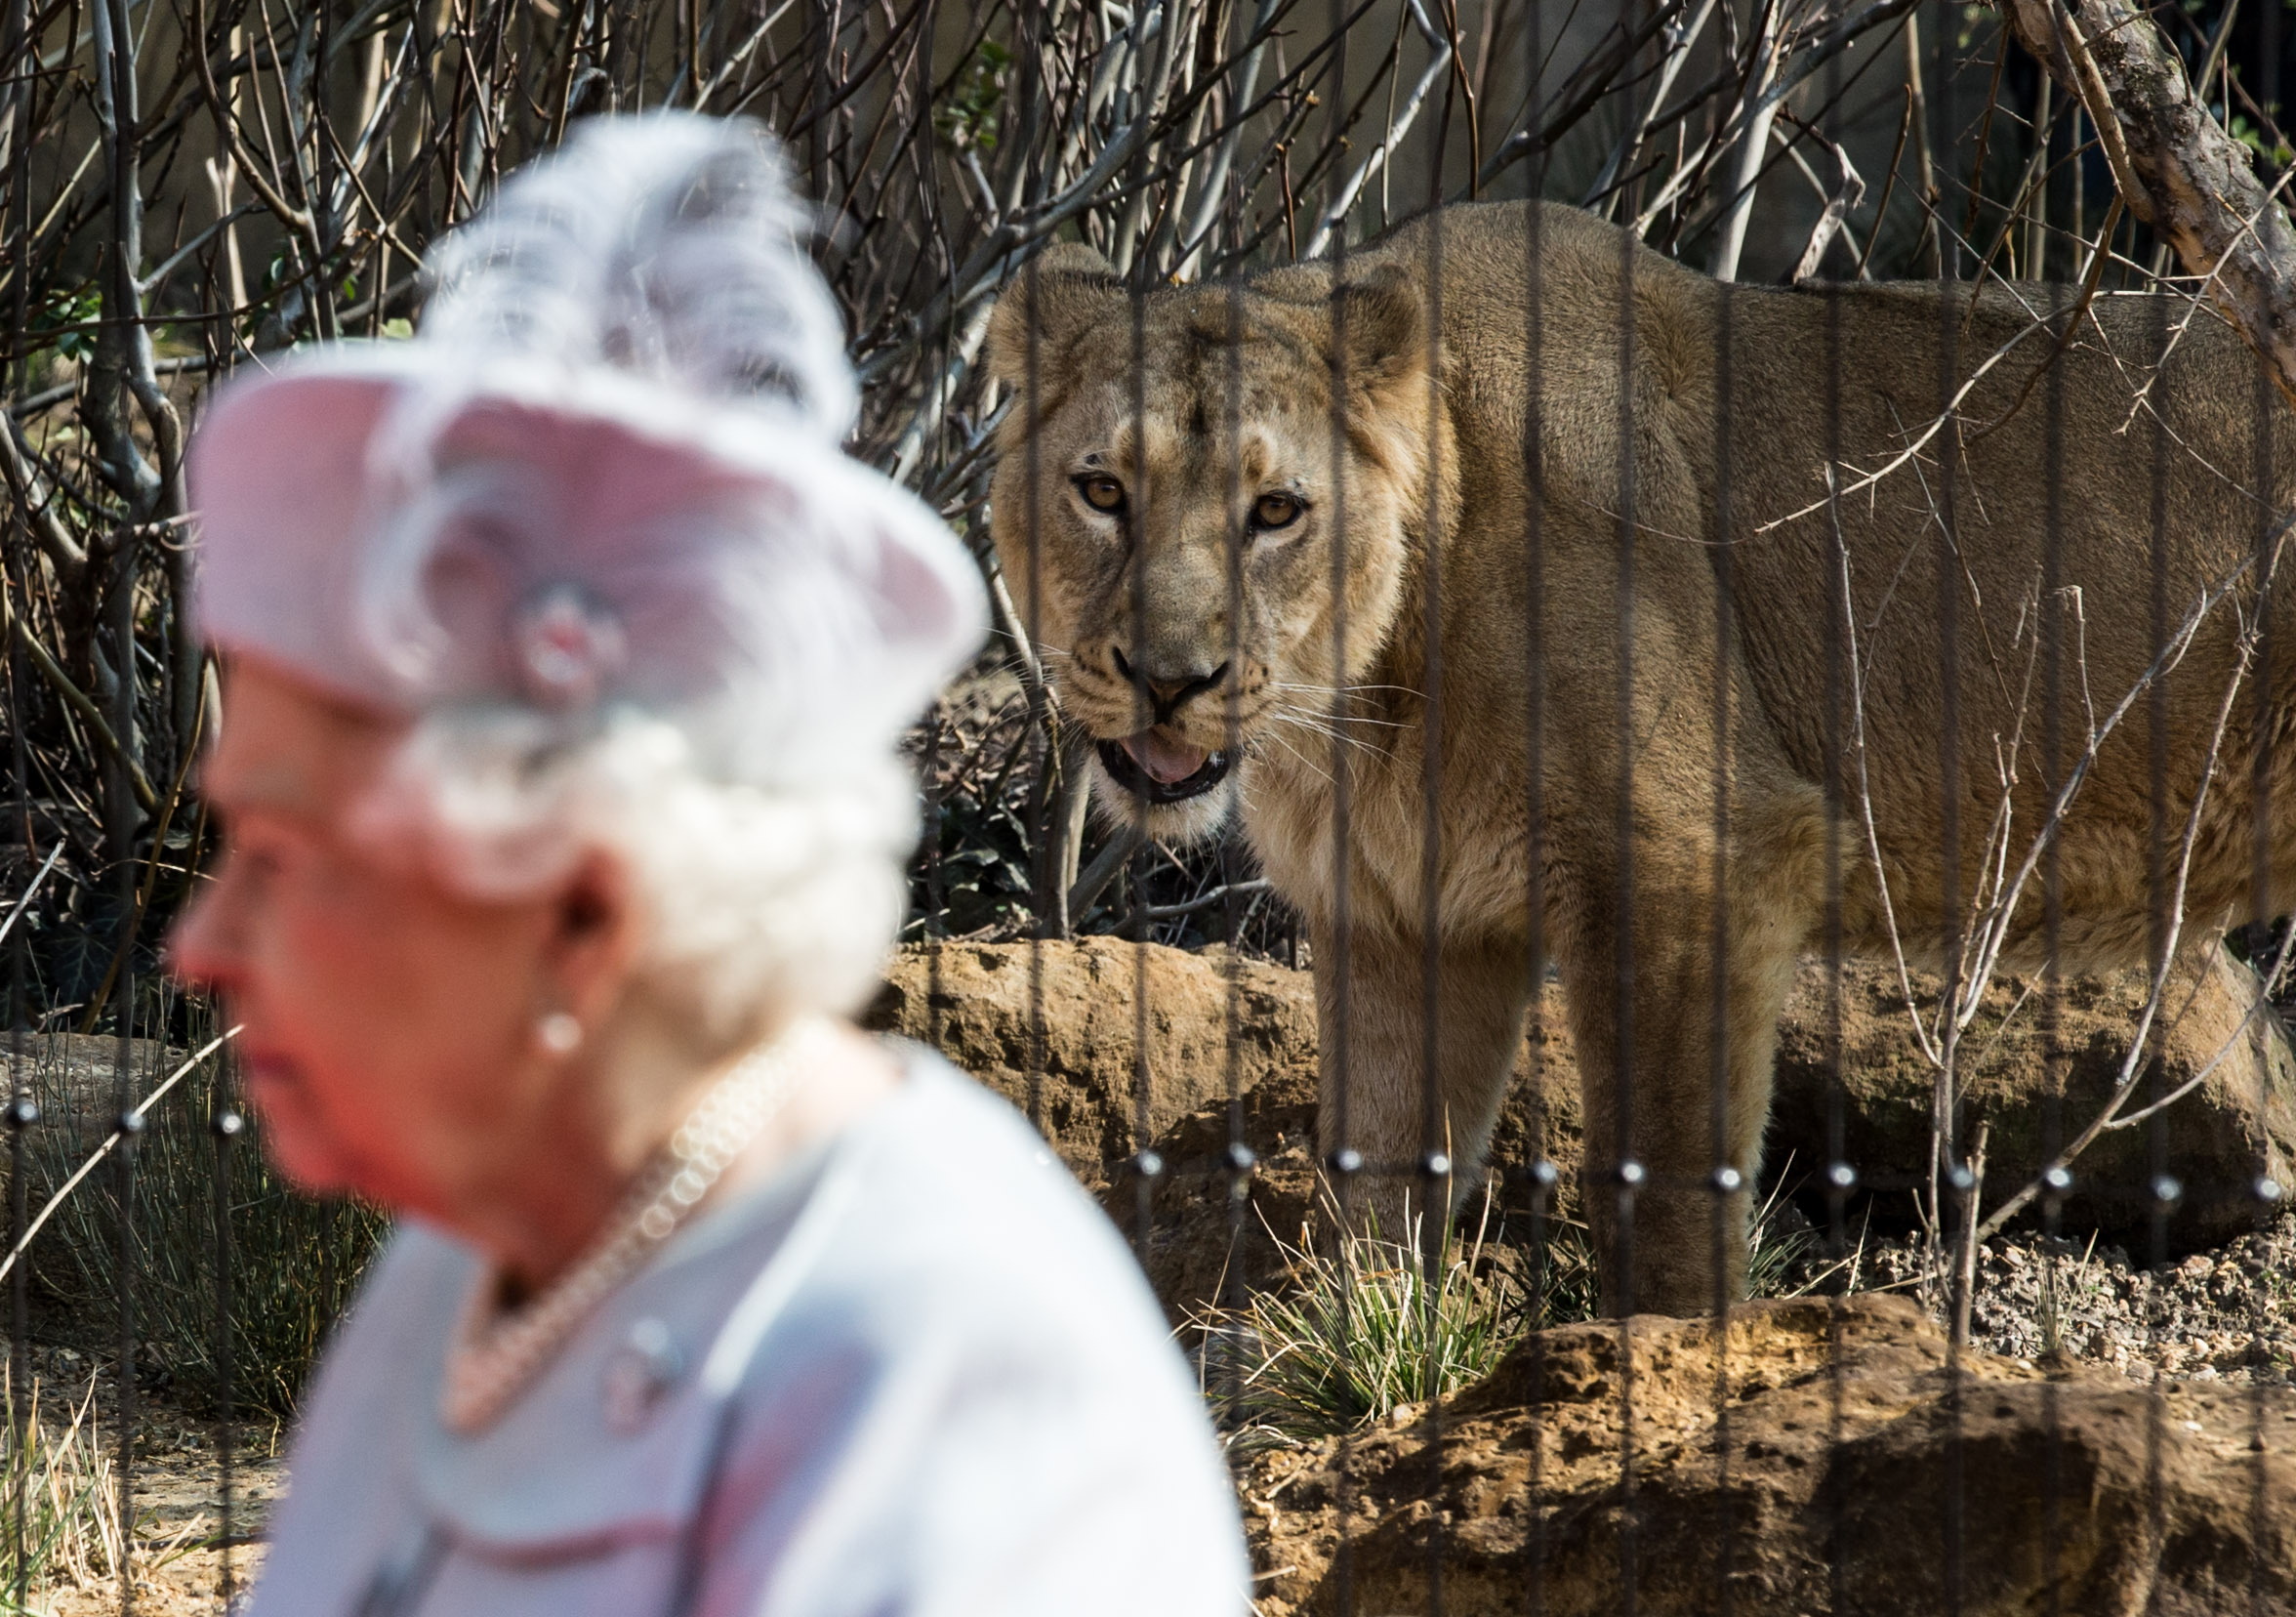 Queen Elizabeth II and an Asiatic Lion